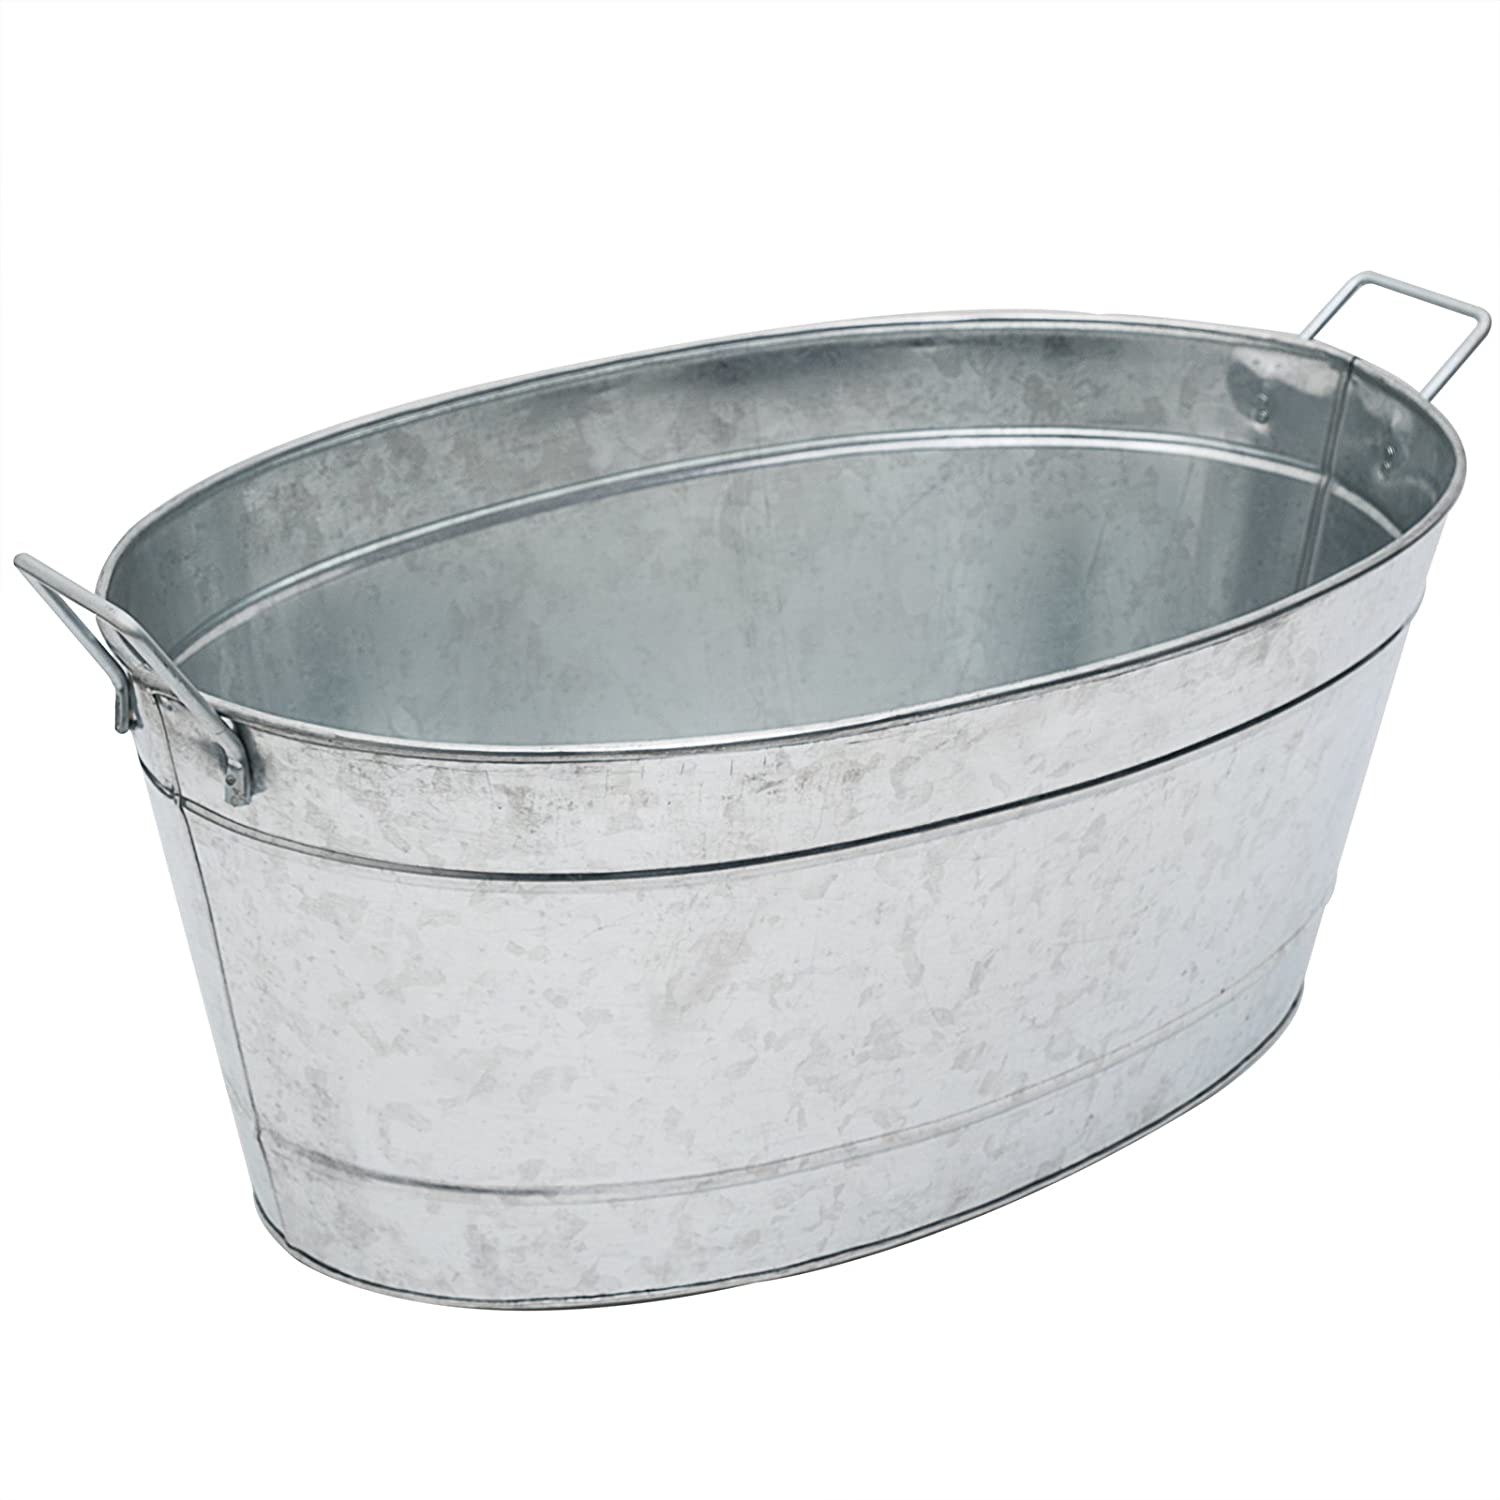 Achla Designs C-55 Large Galvanized Steel Metal Oval tub